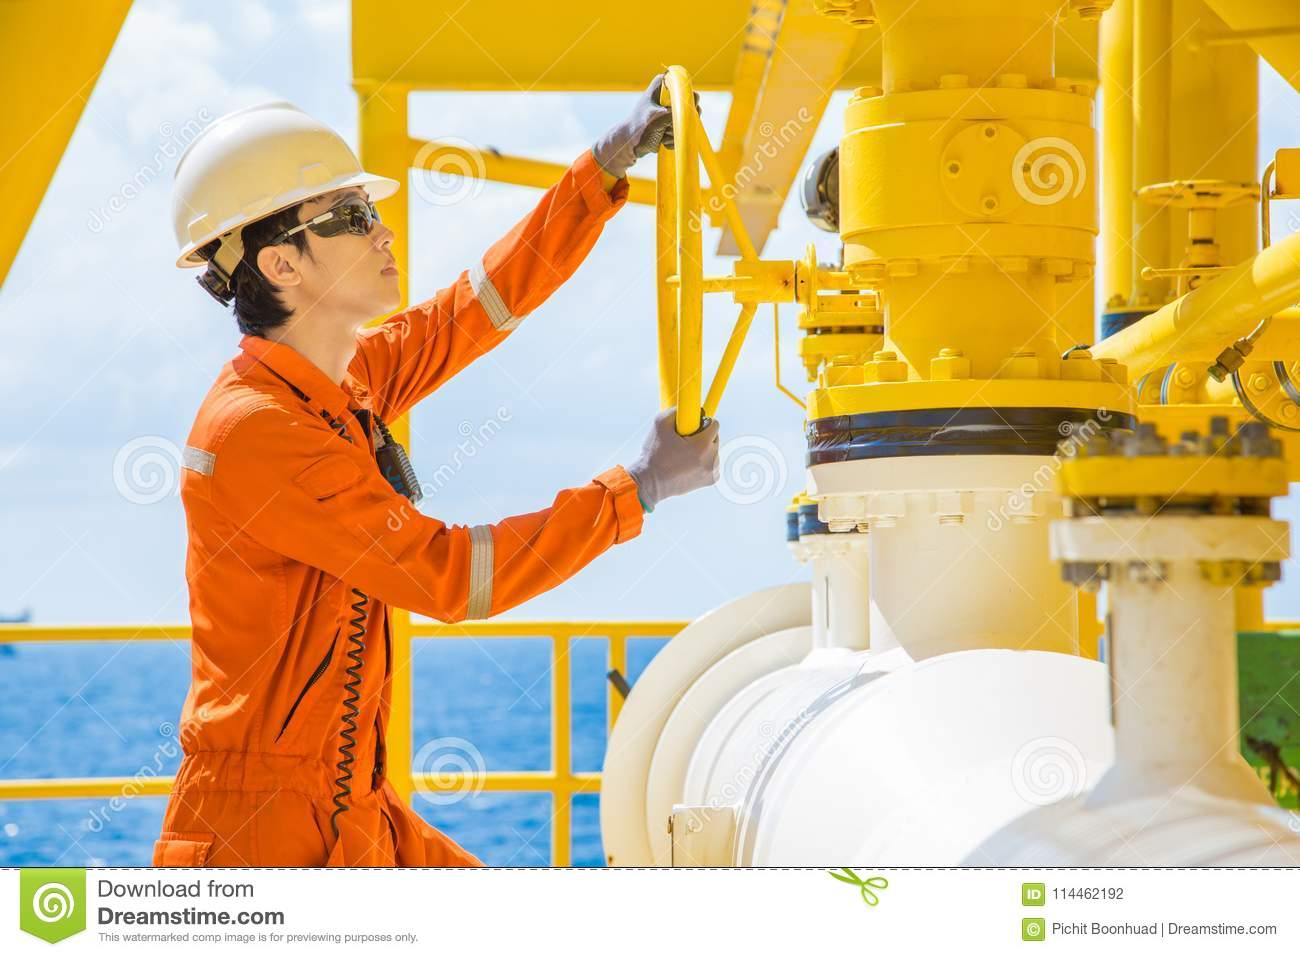 Oilfield Jobs Operator Asst Trainee Odessa Tx: Production Operator Job Description In Oil And Gas